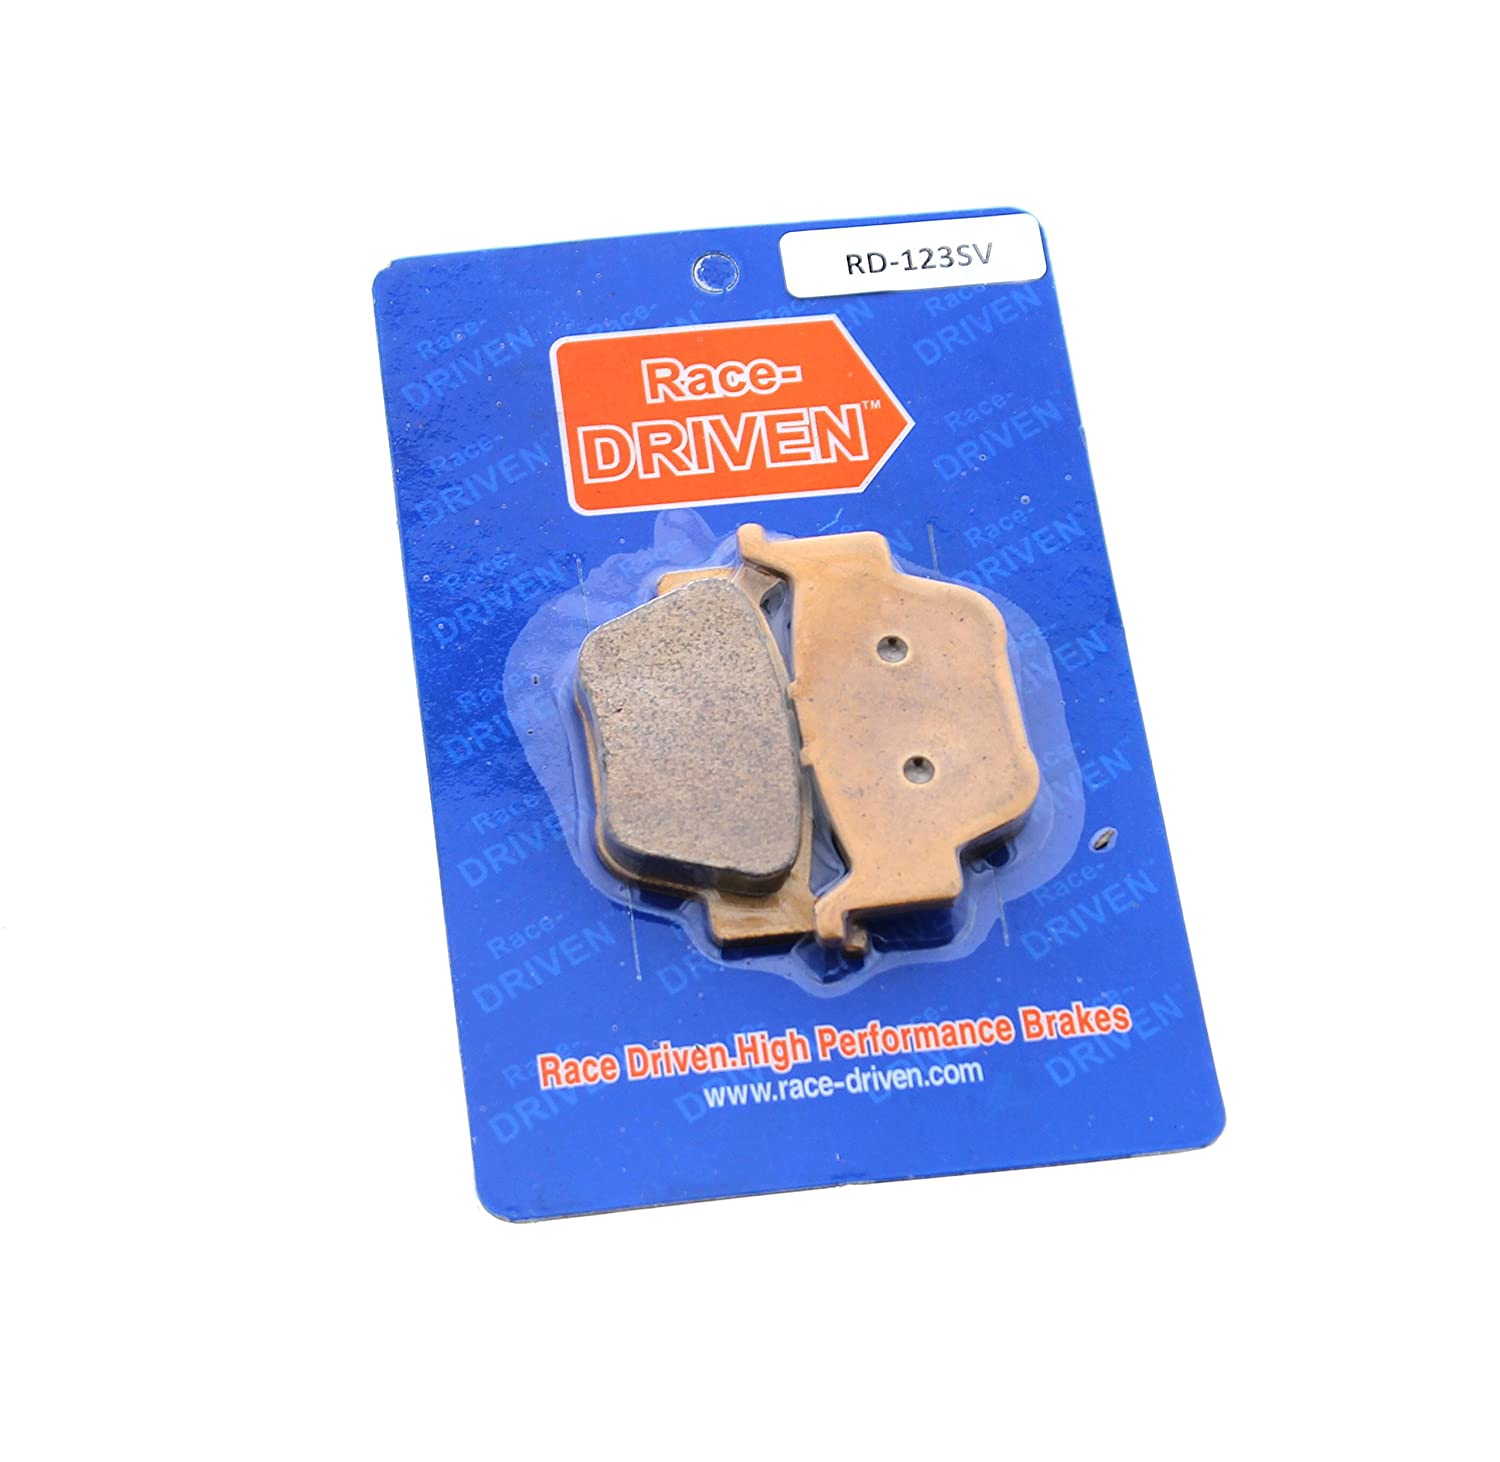 Brake Pads for Honda Pioneer 700 SXS700 2014-2019 Rear Brakes by Race-Driven